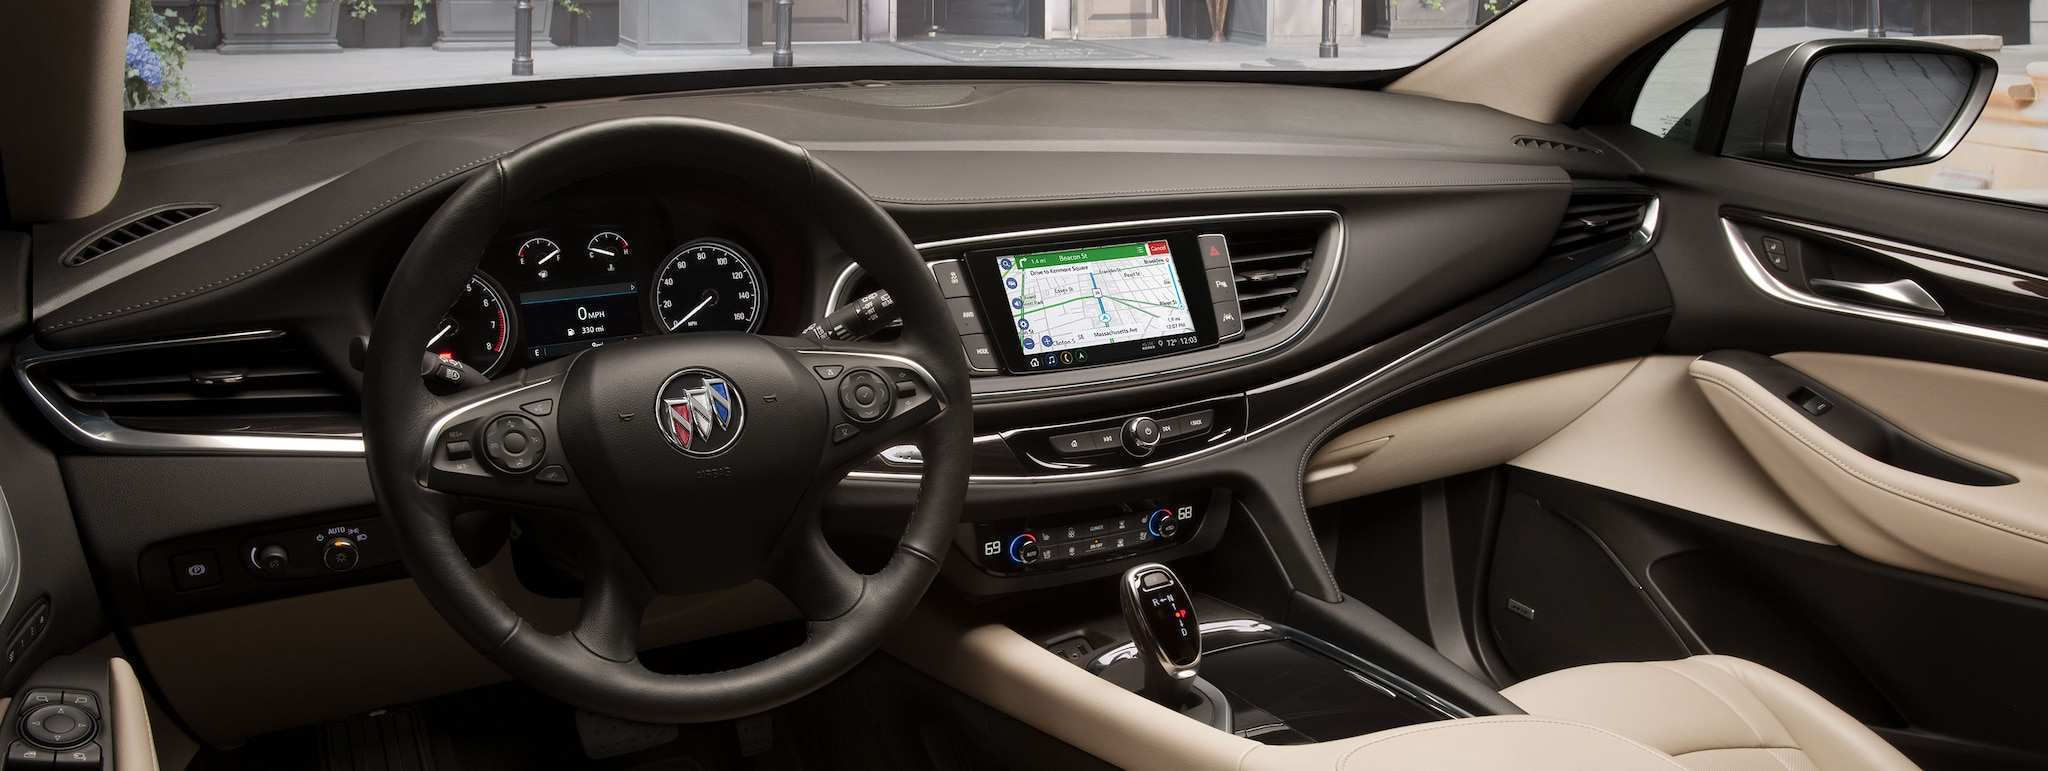 45 The Best 2020 Buick Enclave Interior Configurations